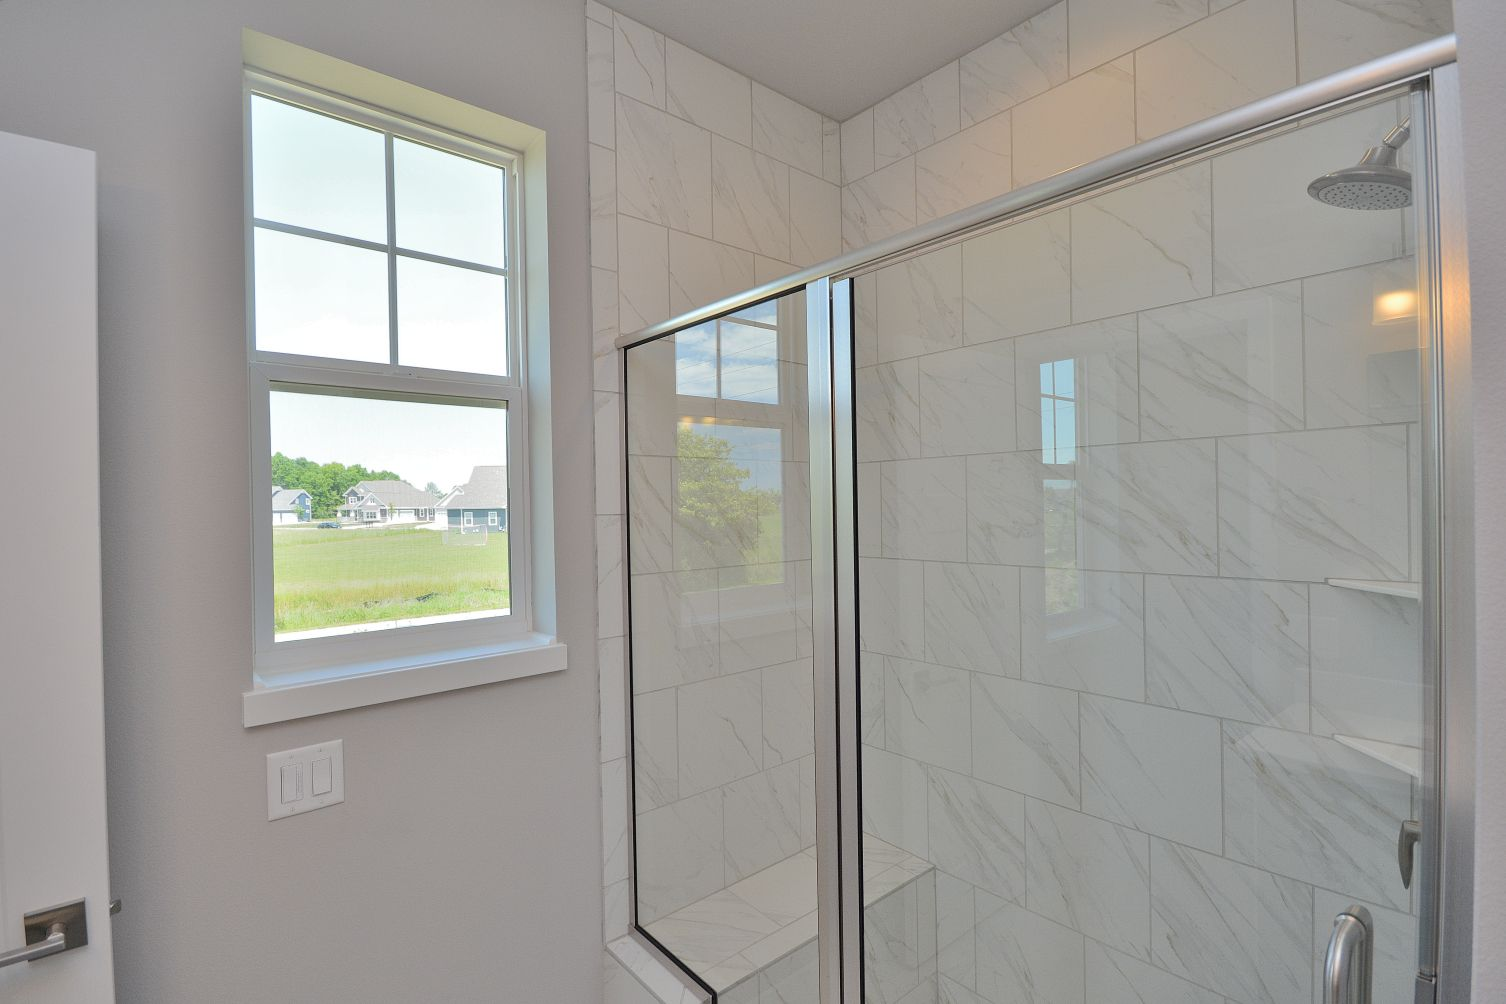 Bathroom featured in The Conrad SS By Veridian Homes in Ozaukee-Sheboygan, WI